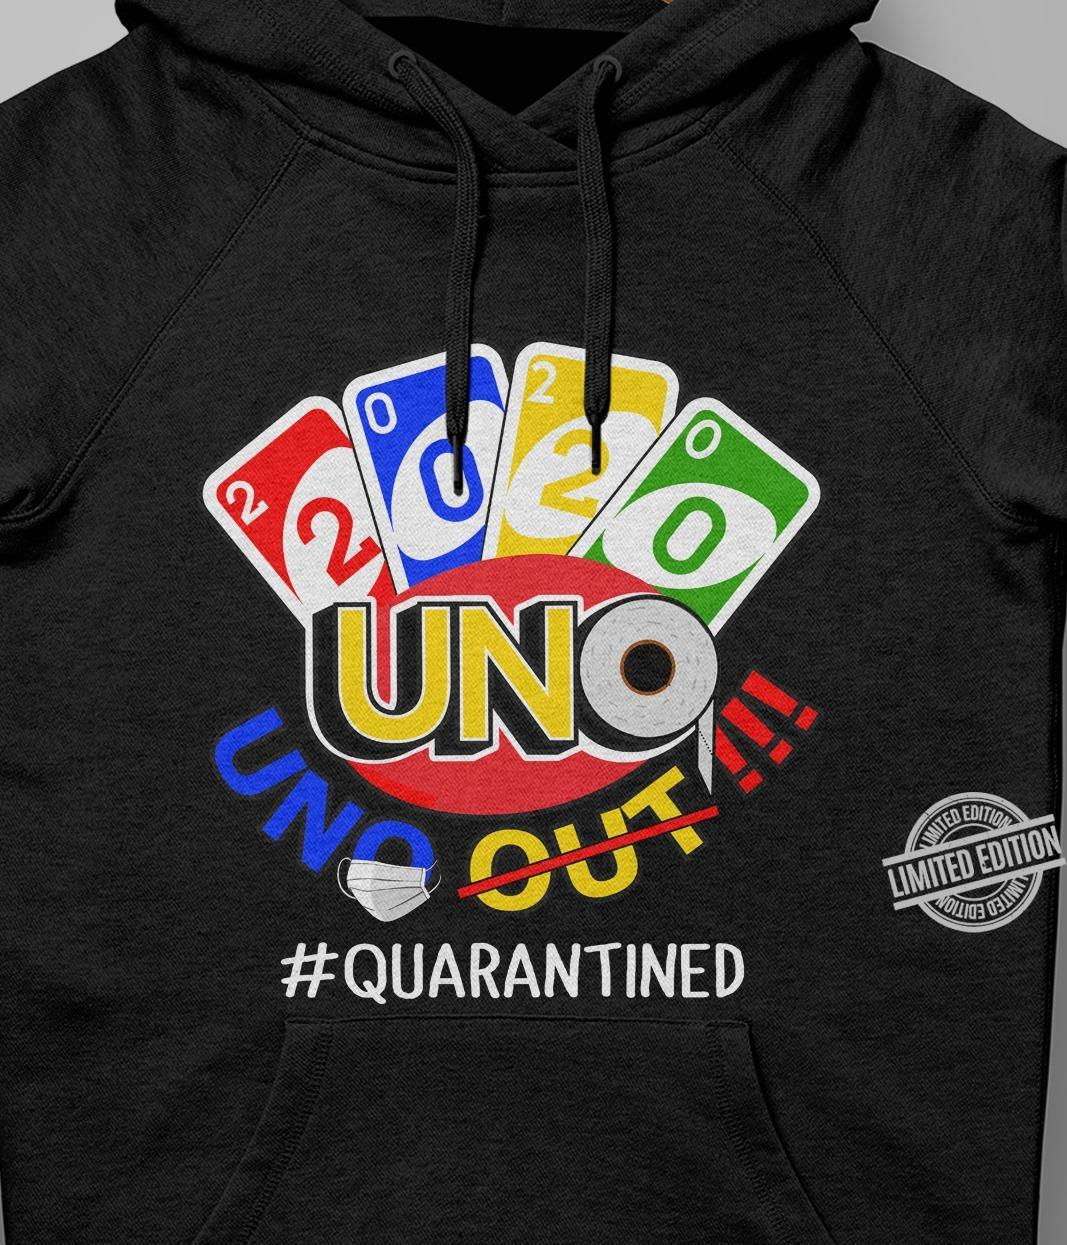 2020 UNO Uno Out Quarantined Shirt